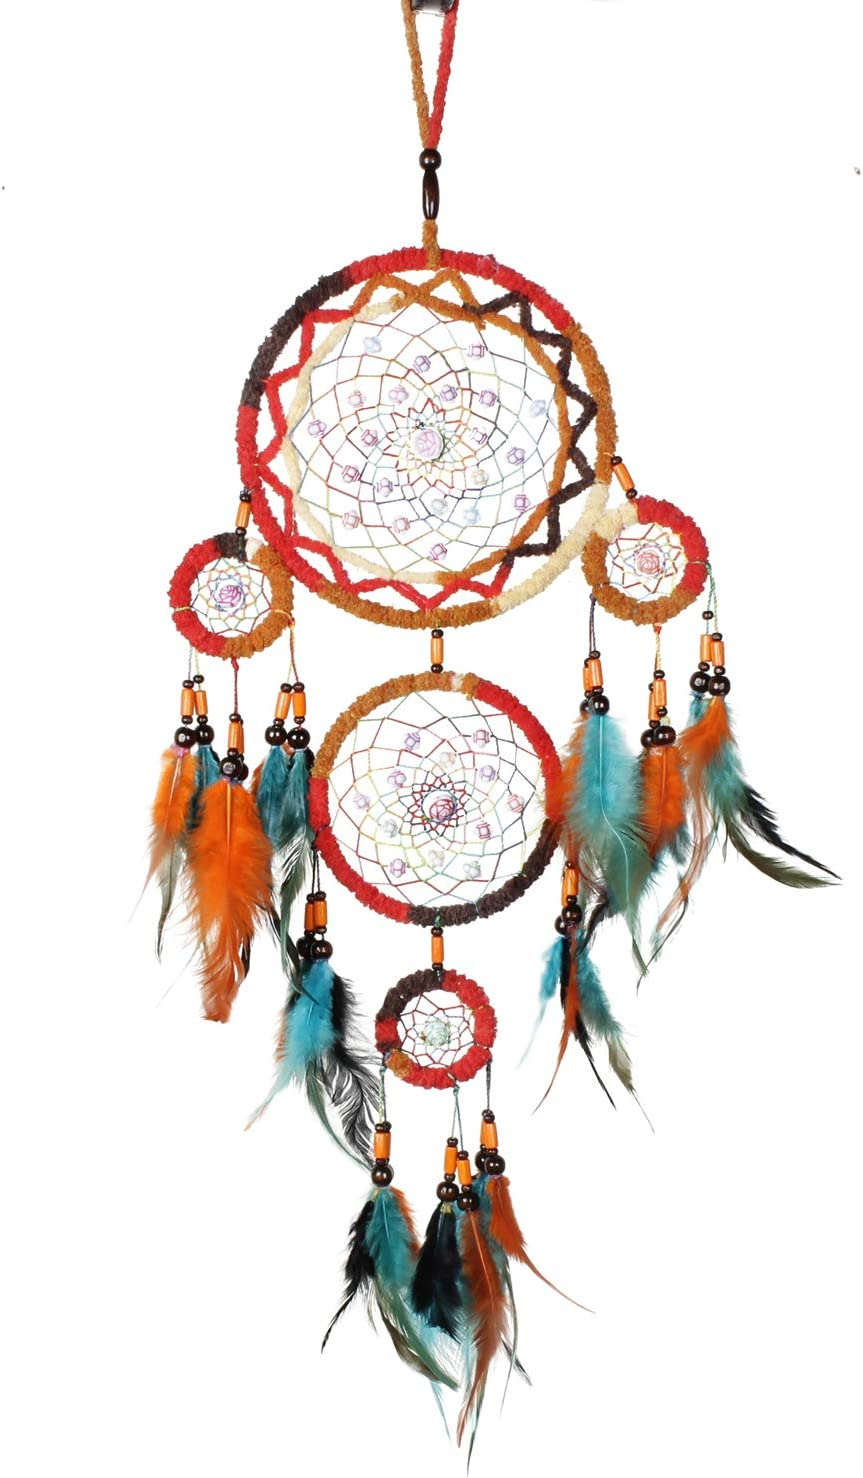 LuLuMZ Boho Dream Catcher for Bedroom Handmade Wooden Beads and Feather Wall Hanging for Kids Girls, Home Decoration, Art Ornament Wedding Party Blessing Festival Gift (Colorful A2)